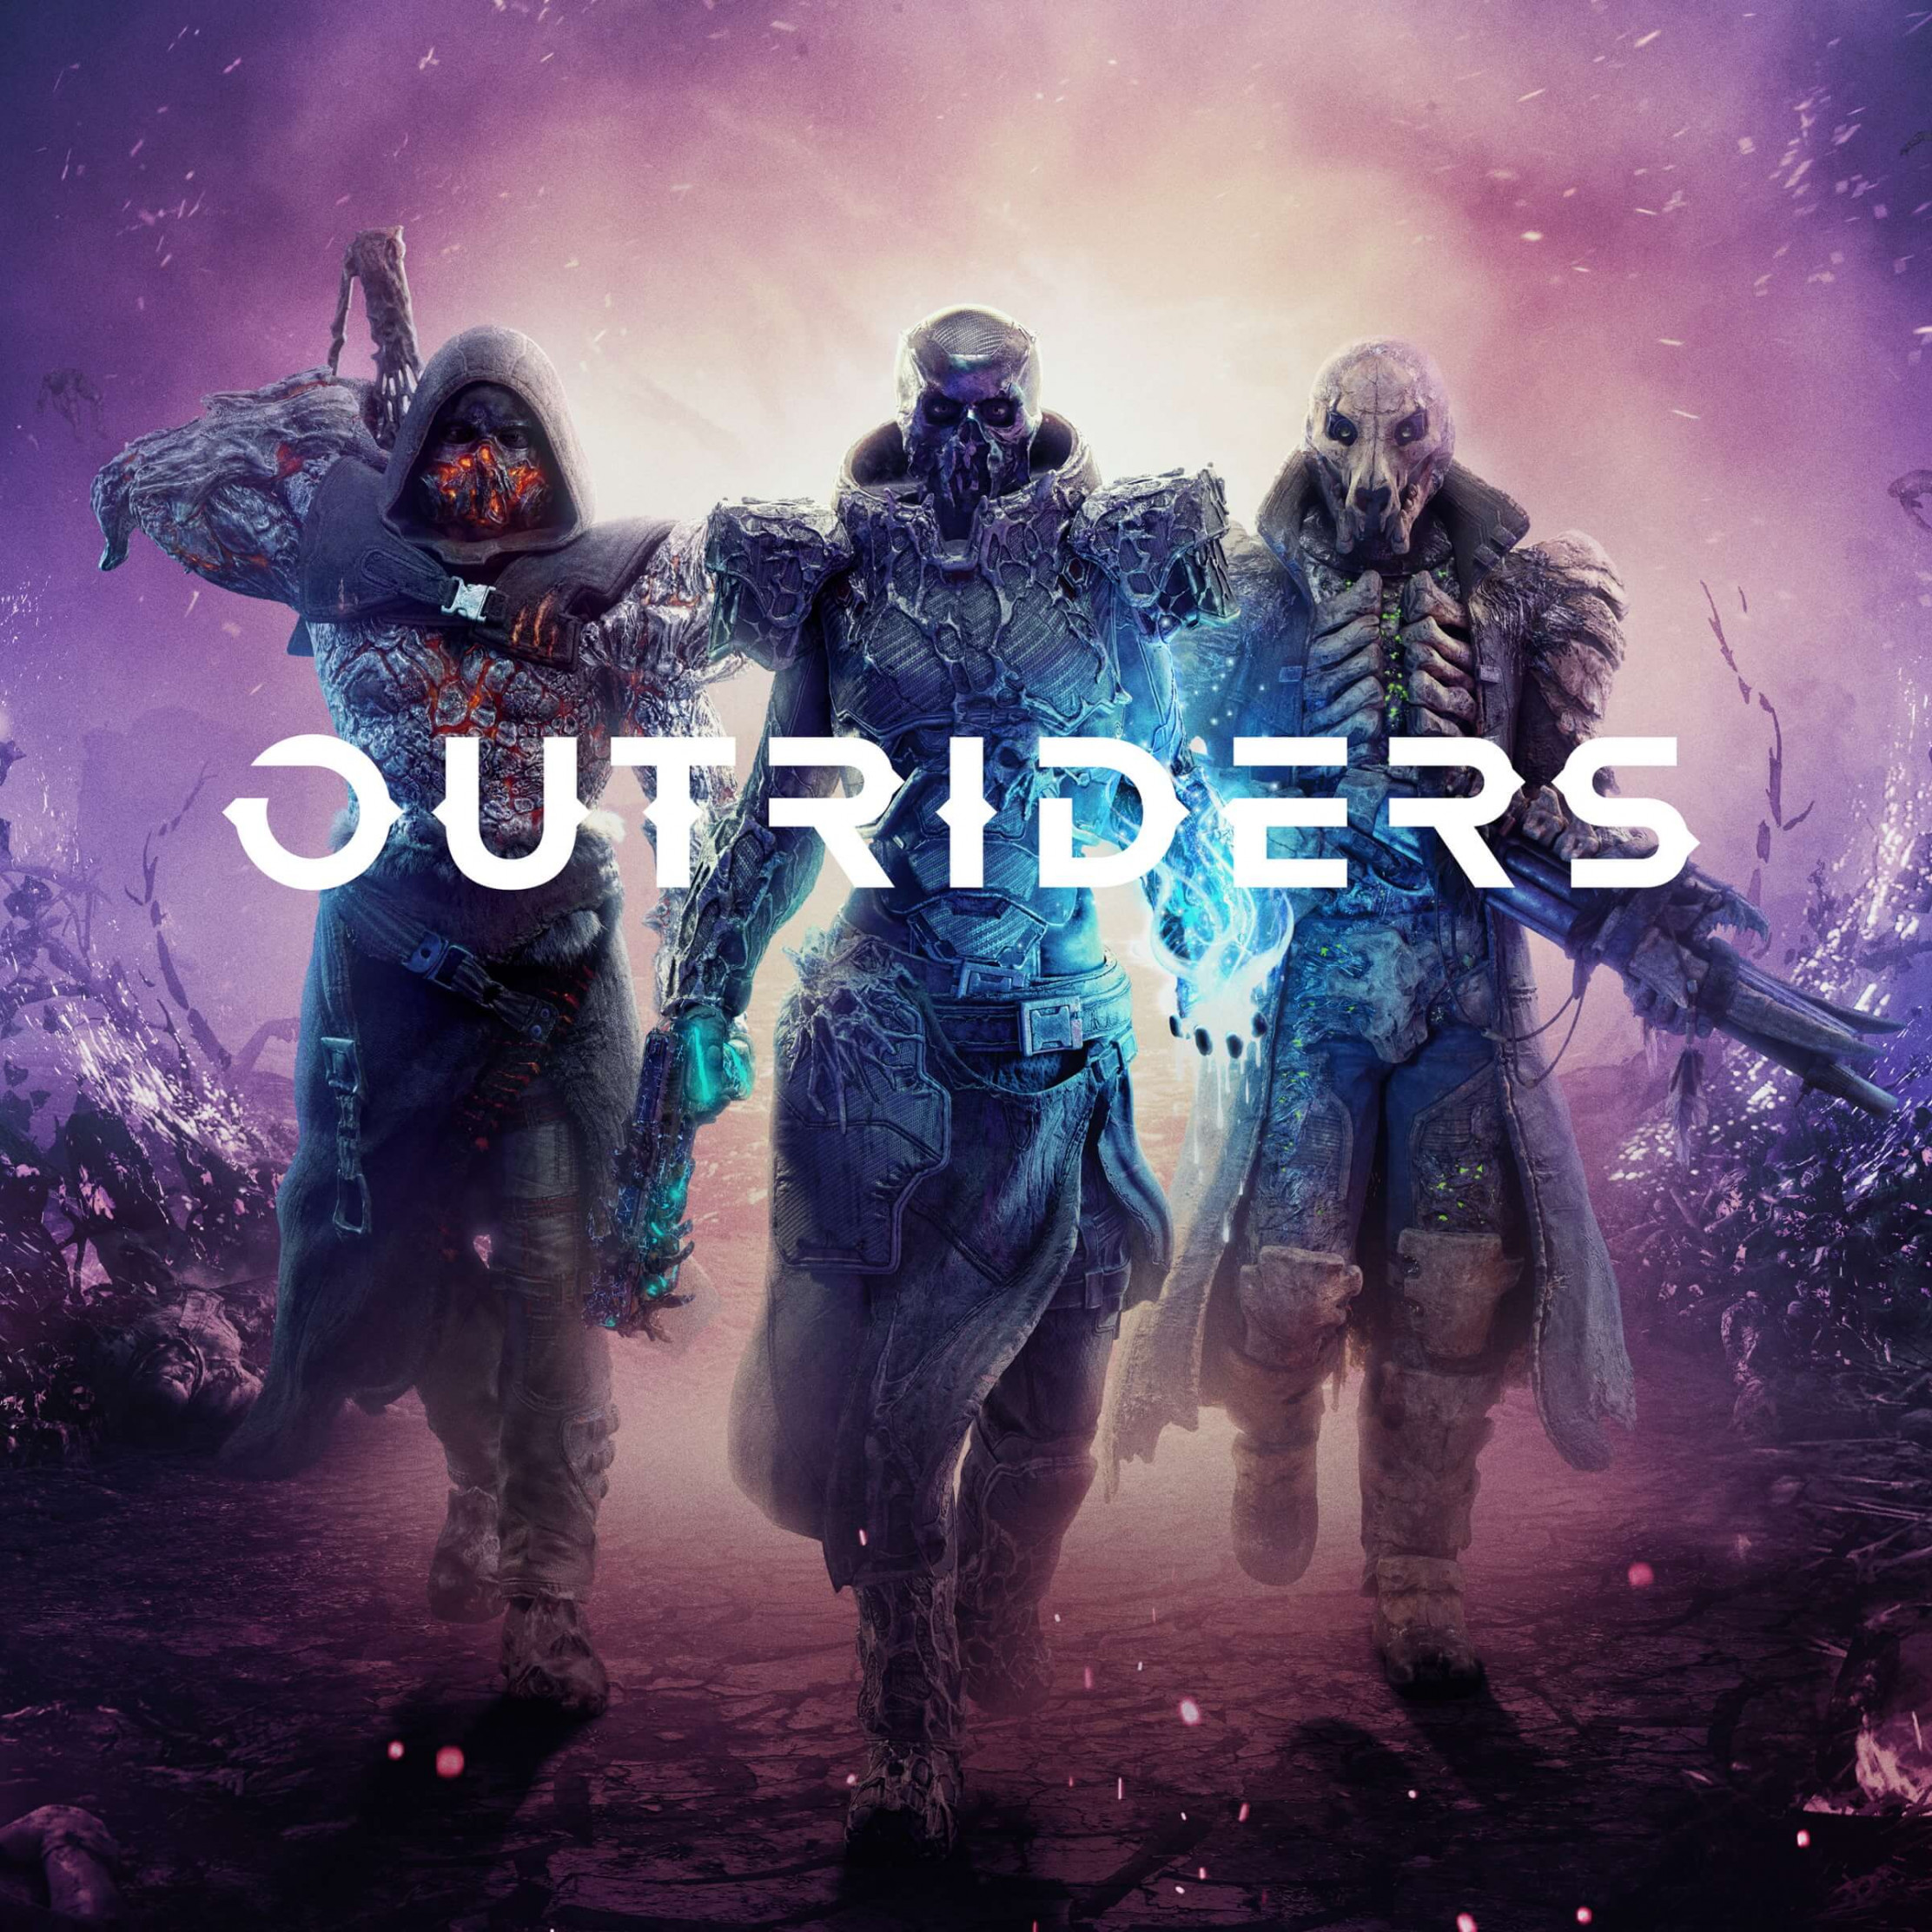 Outriders wallpaper 2224x2224